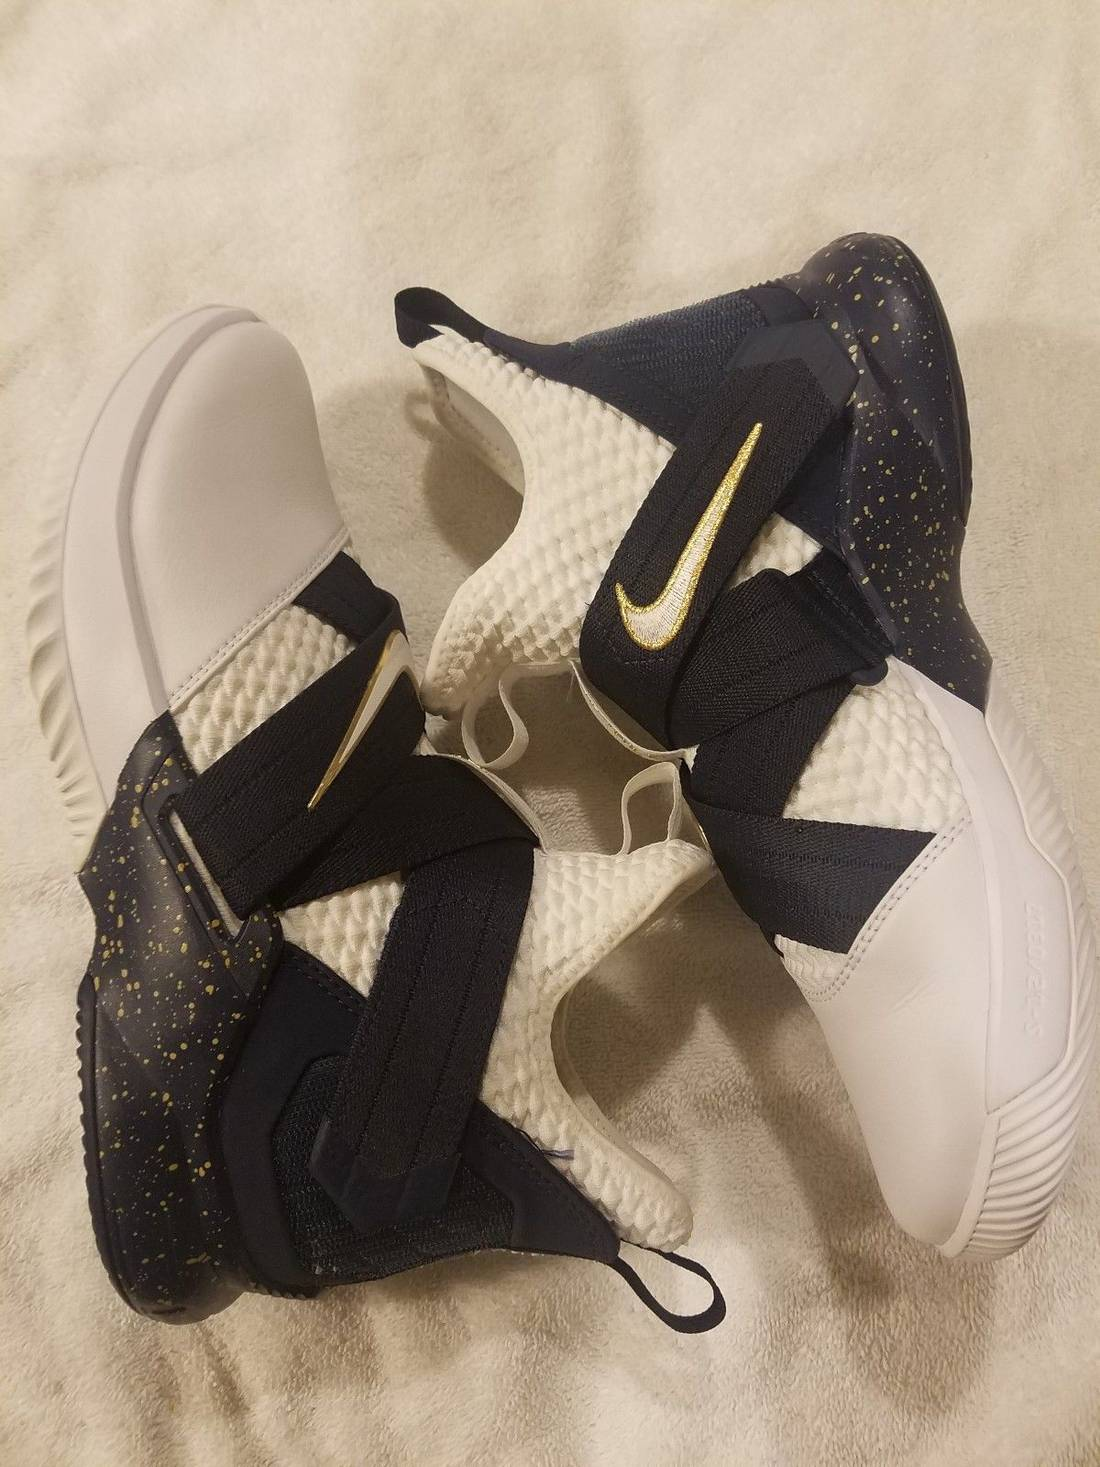 promo code a7921 db6c8 ... new arrivals nike lebron soldier 12 witnessmens new without box size us  9 eu 42 d4c53